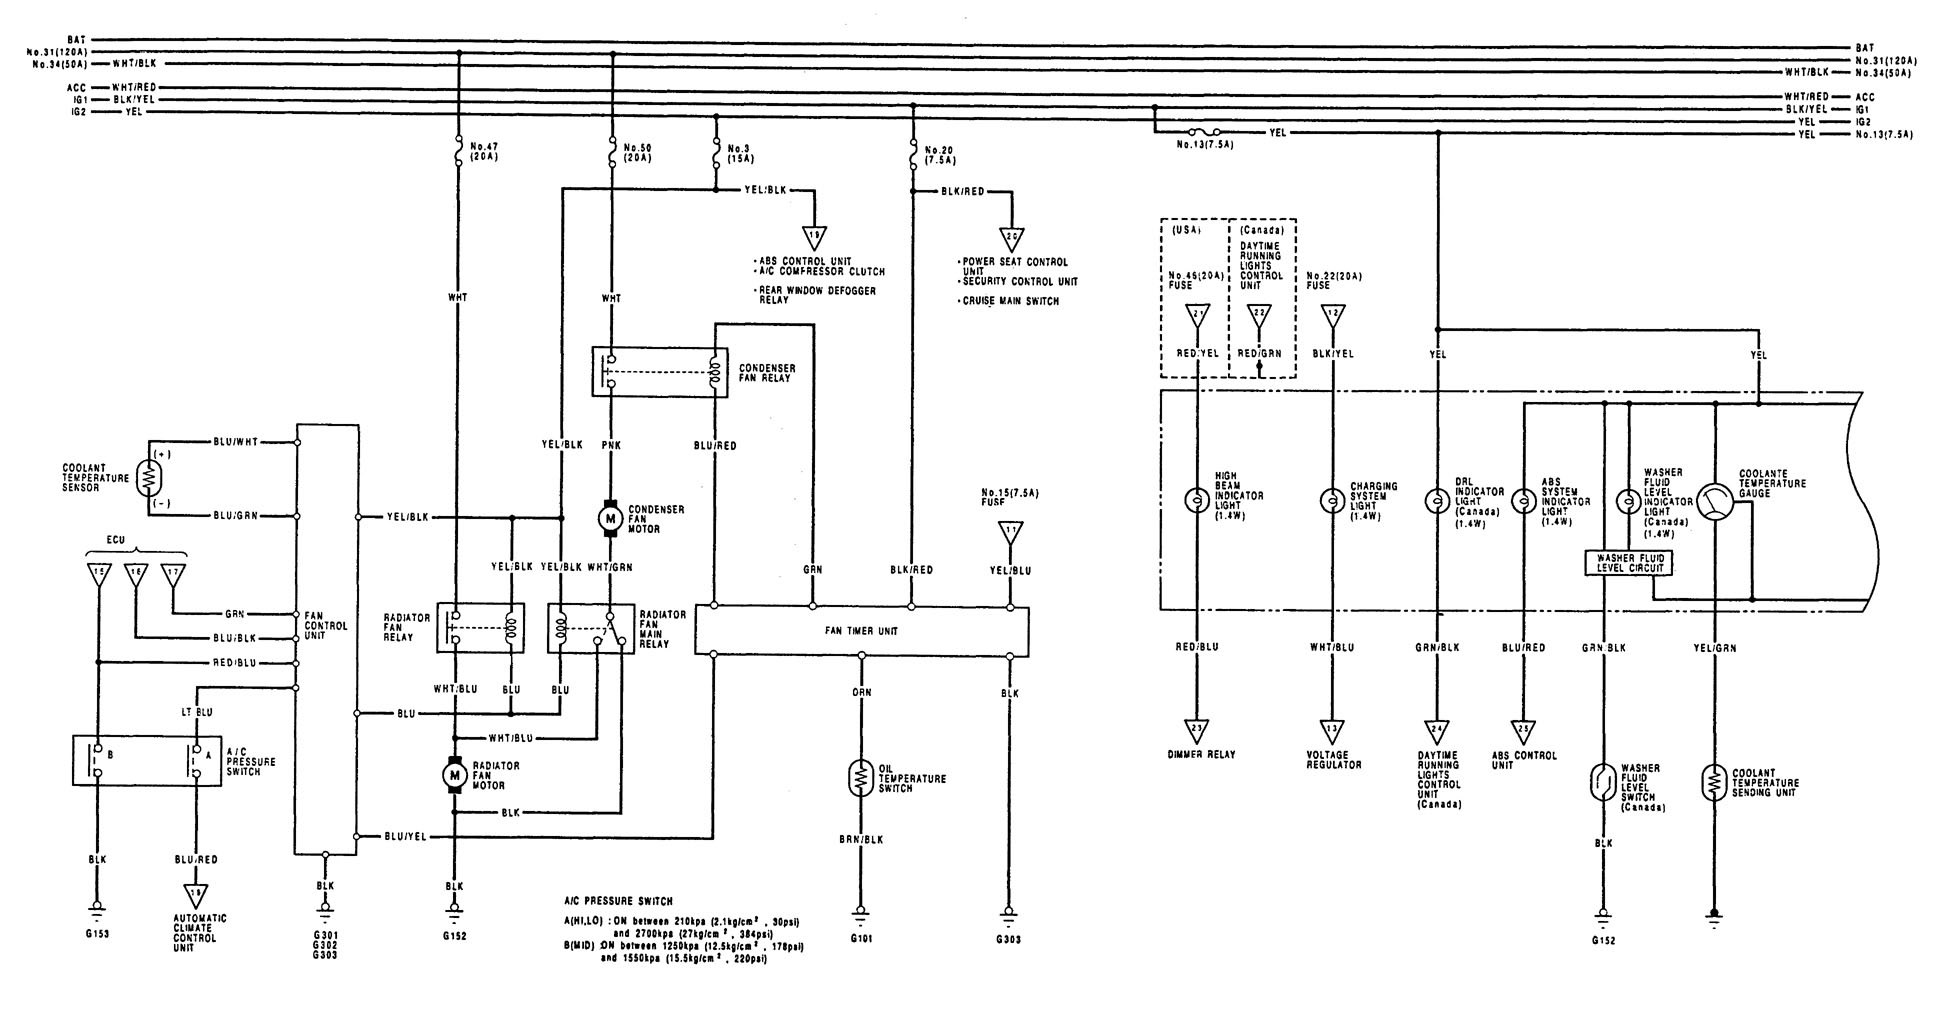 91 Acura Legend Wiring Diagram: 1993 Acura Legend Wiring Diagram - Wiring  Diagrams Schematicsrh: